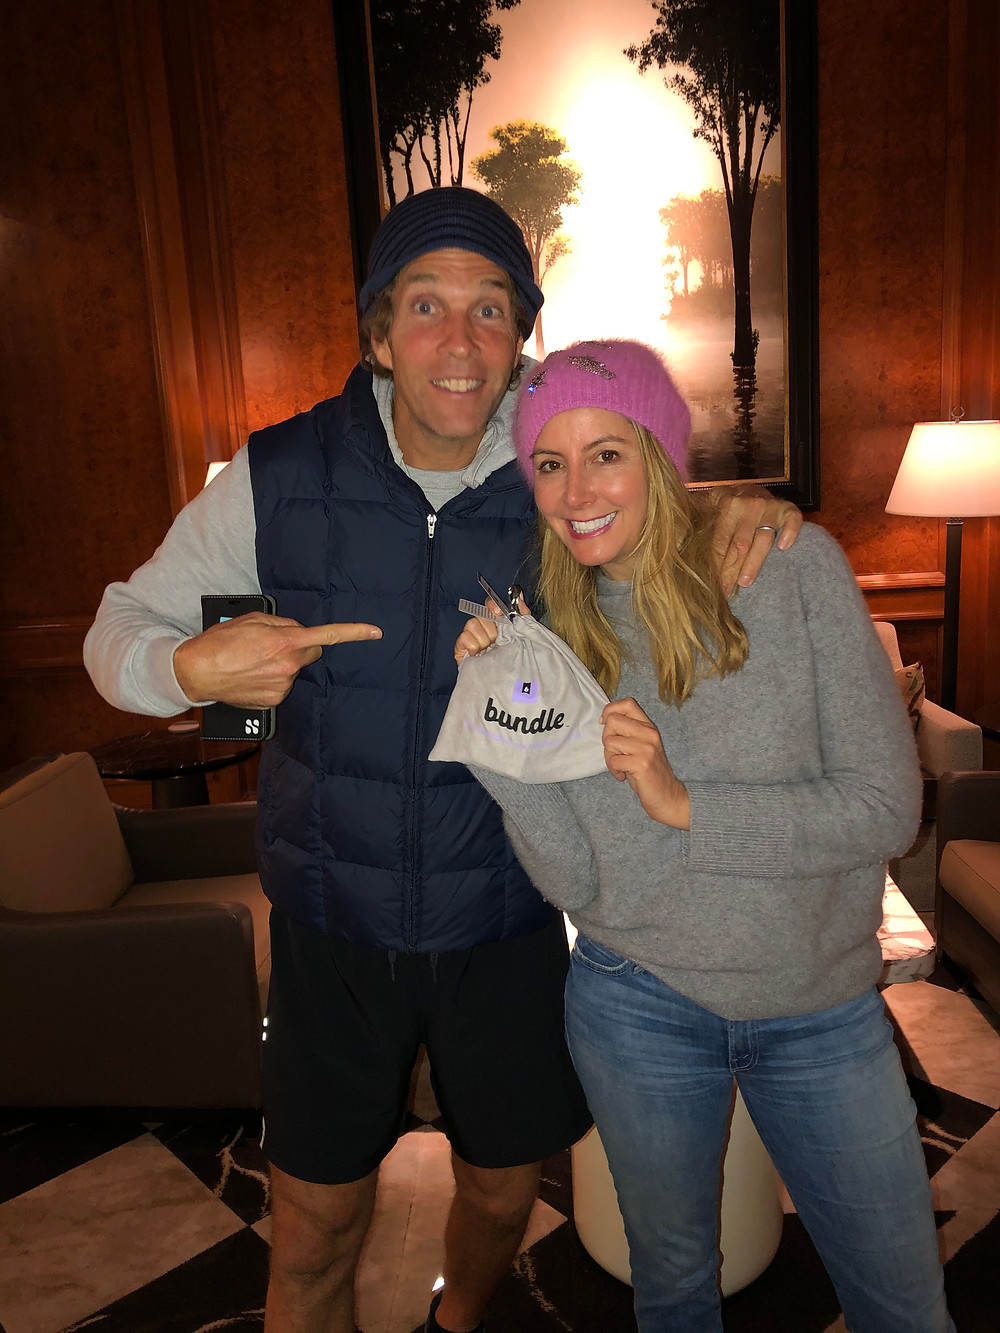 Jesse Itzler and Sara Blakely with their personalized game, Bundle!